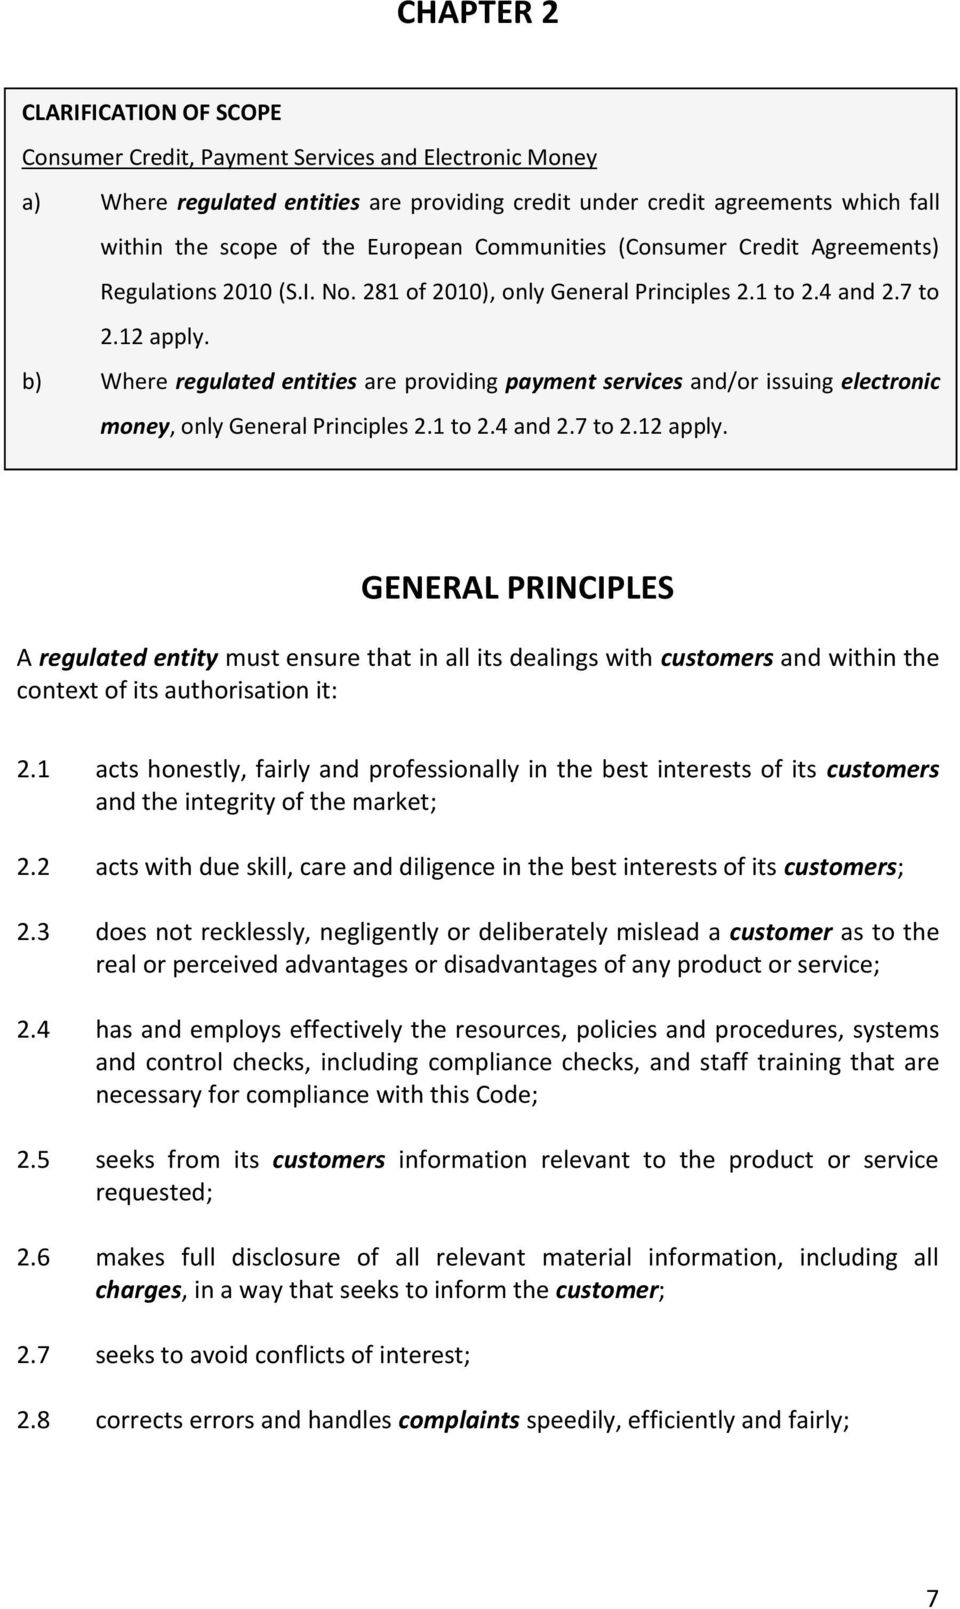 b) Where regulated entities are providing payment services and/or issuing electronic money, only General Principles 2.1 to 2.4 and 2.7 to 2.12 apply.